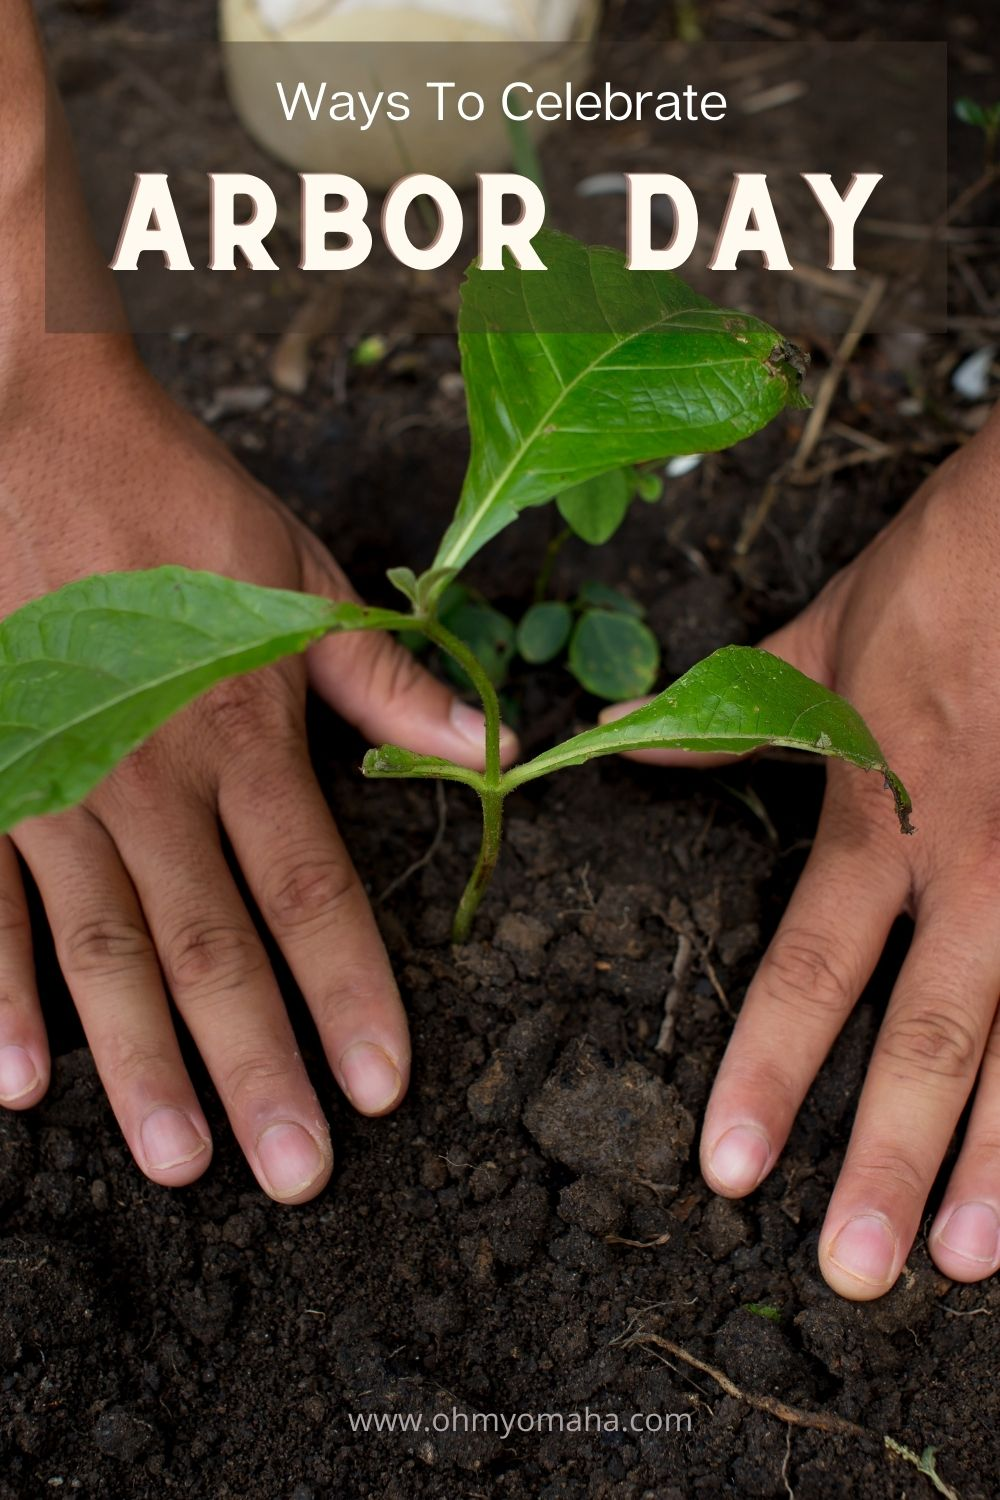 10+ ways to celebrate Arbor Day! Learn what Arbor Day is all about, see how they celebrate it where the holiday originated (in Nebraska), and find activities to do have your own celebration.